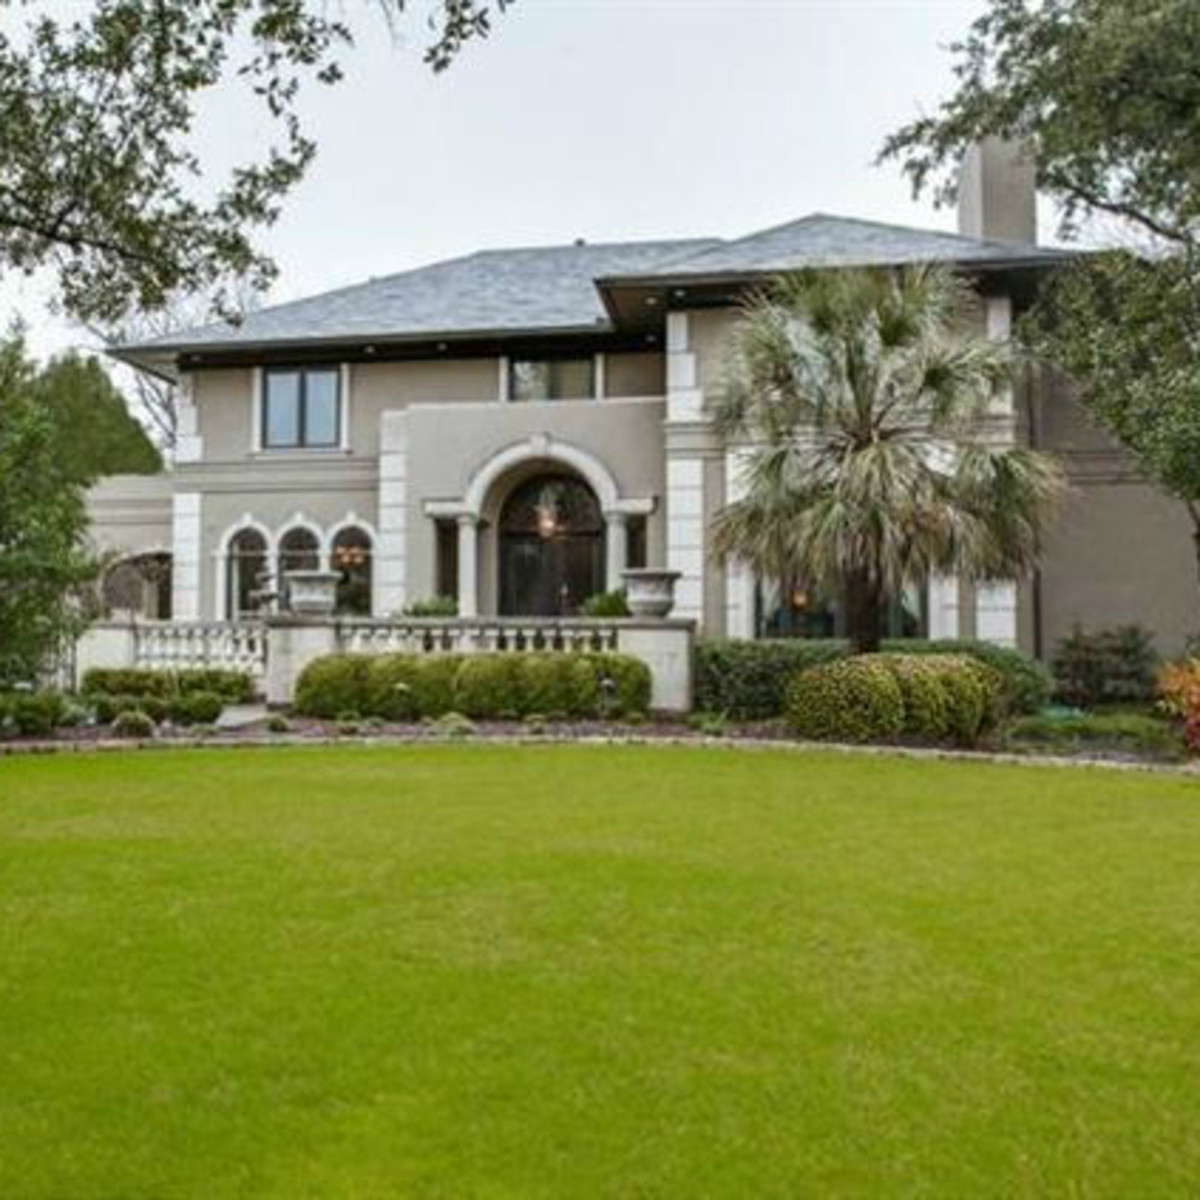 Owners Went A Little Overboard In For-sale Preston Hollow